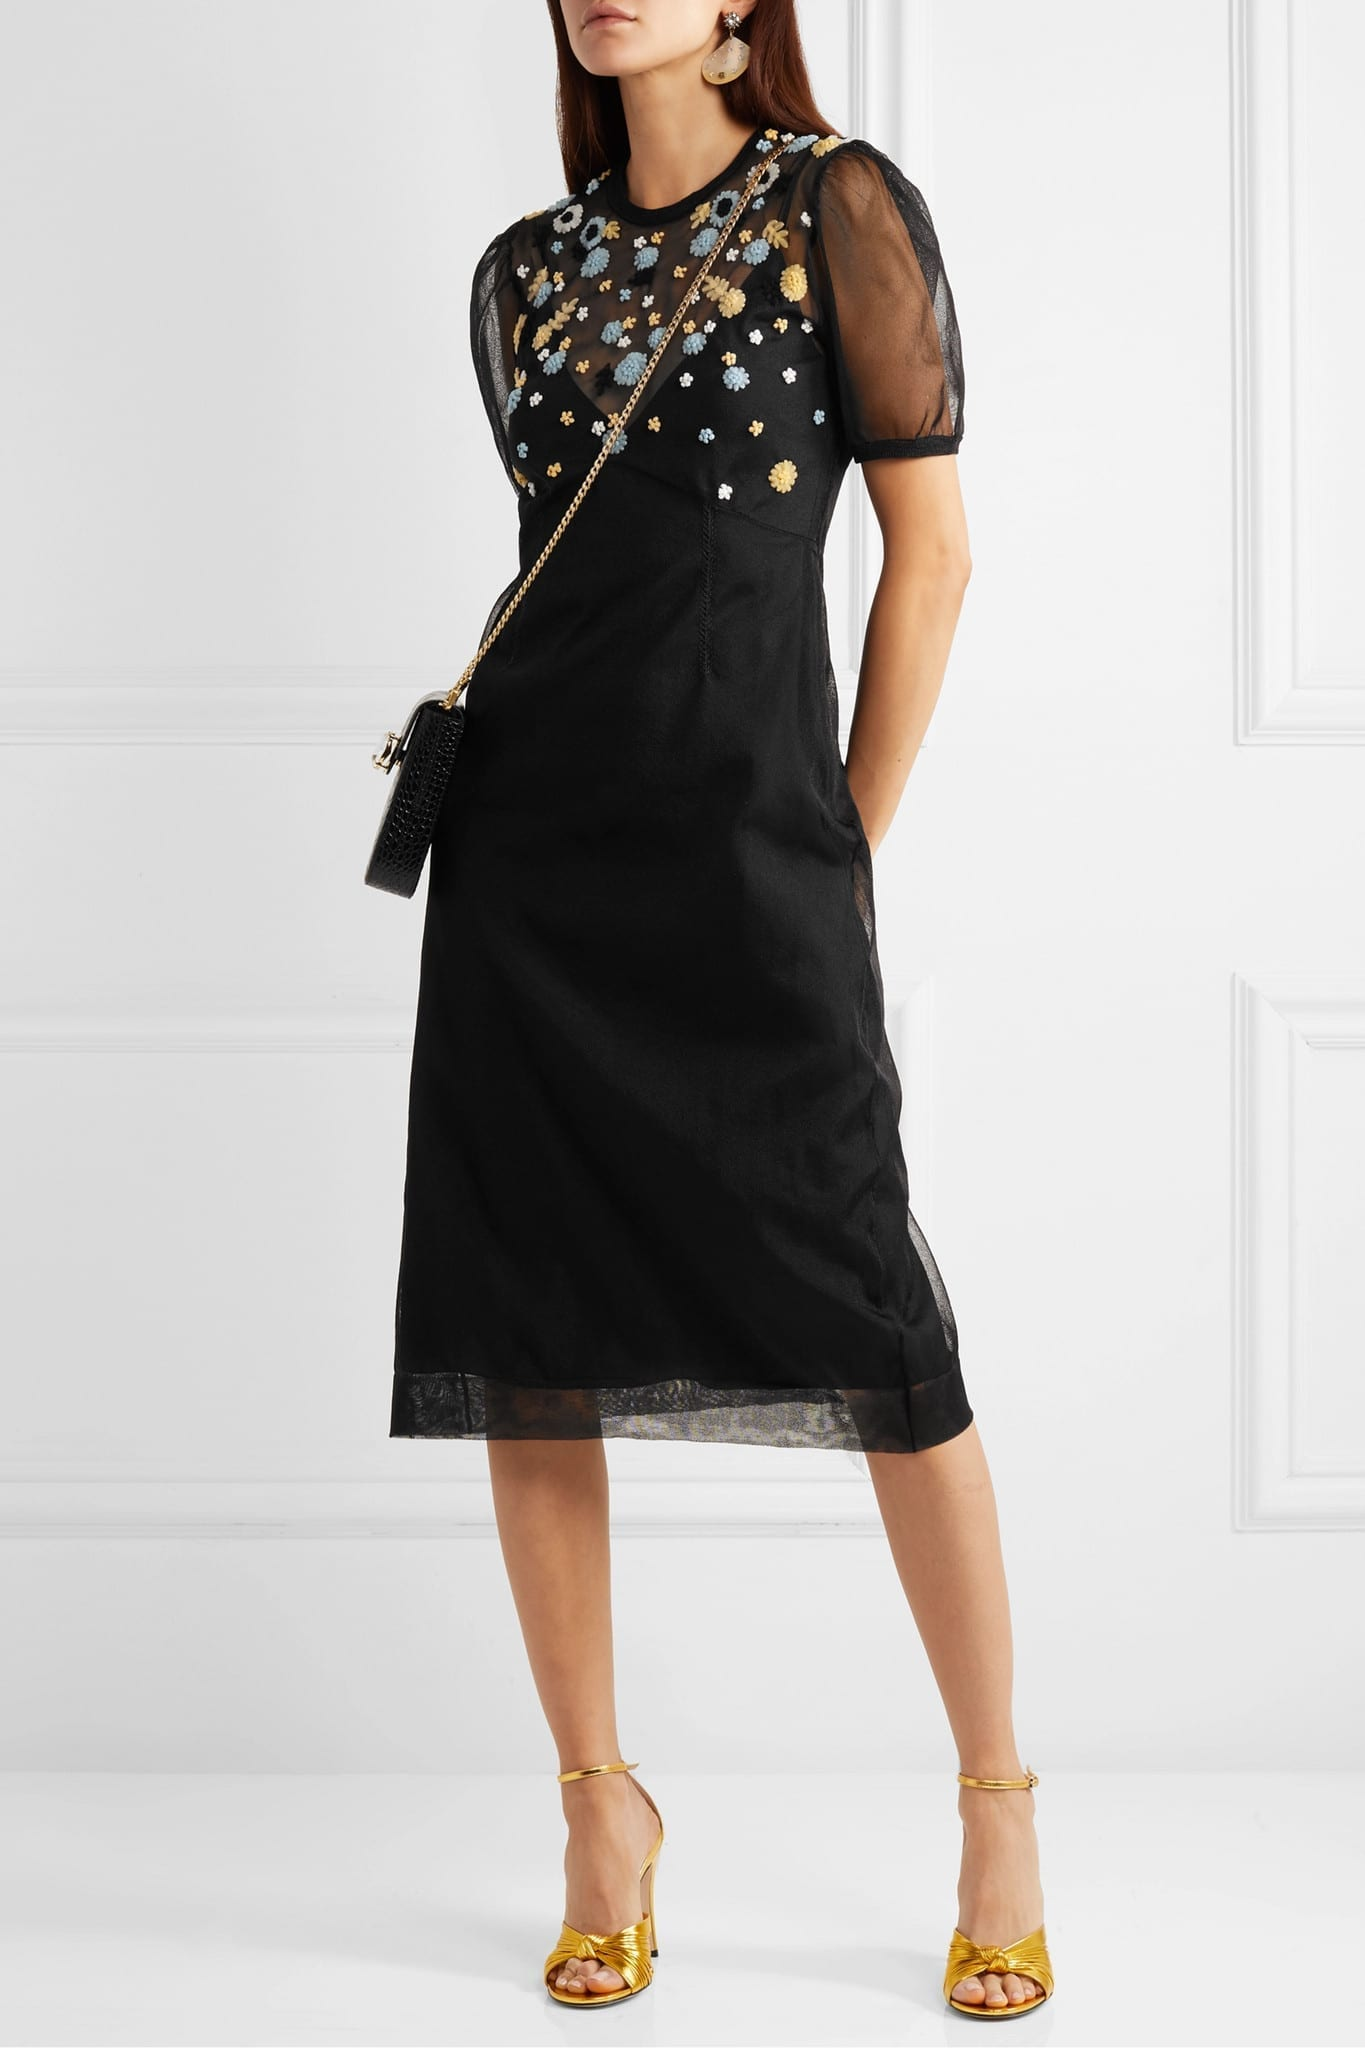 MIU MIU Embroidered Tulle Midi Dress